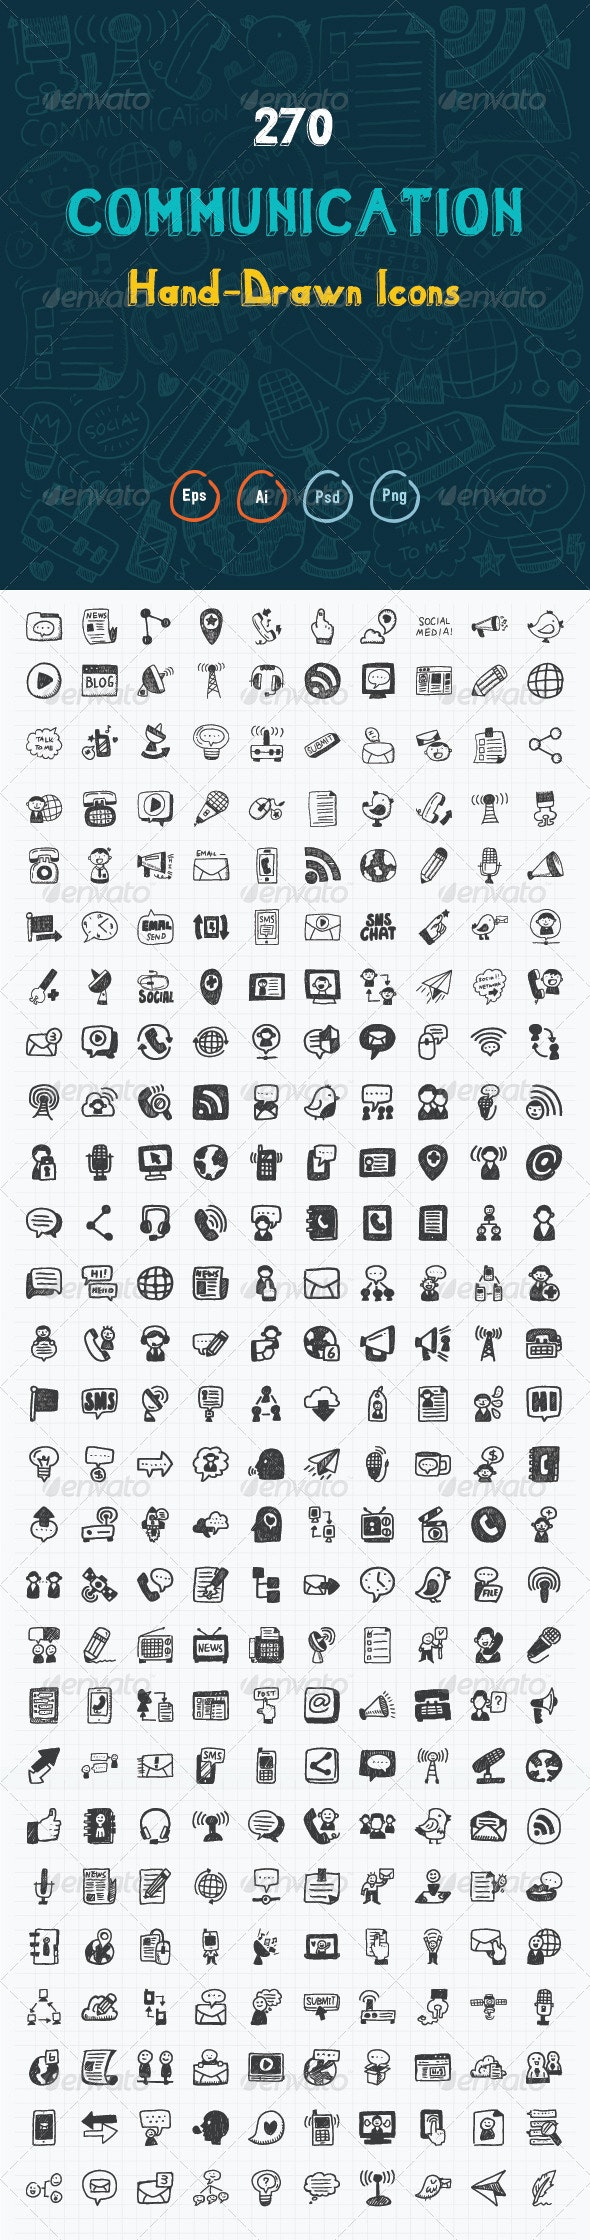 270 Hand Drawn Communication Icons - Web Icons